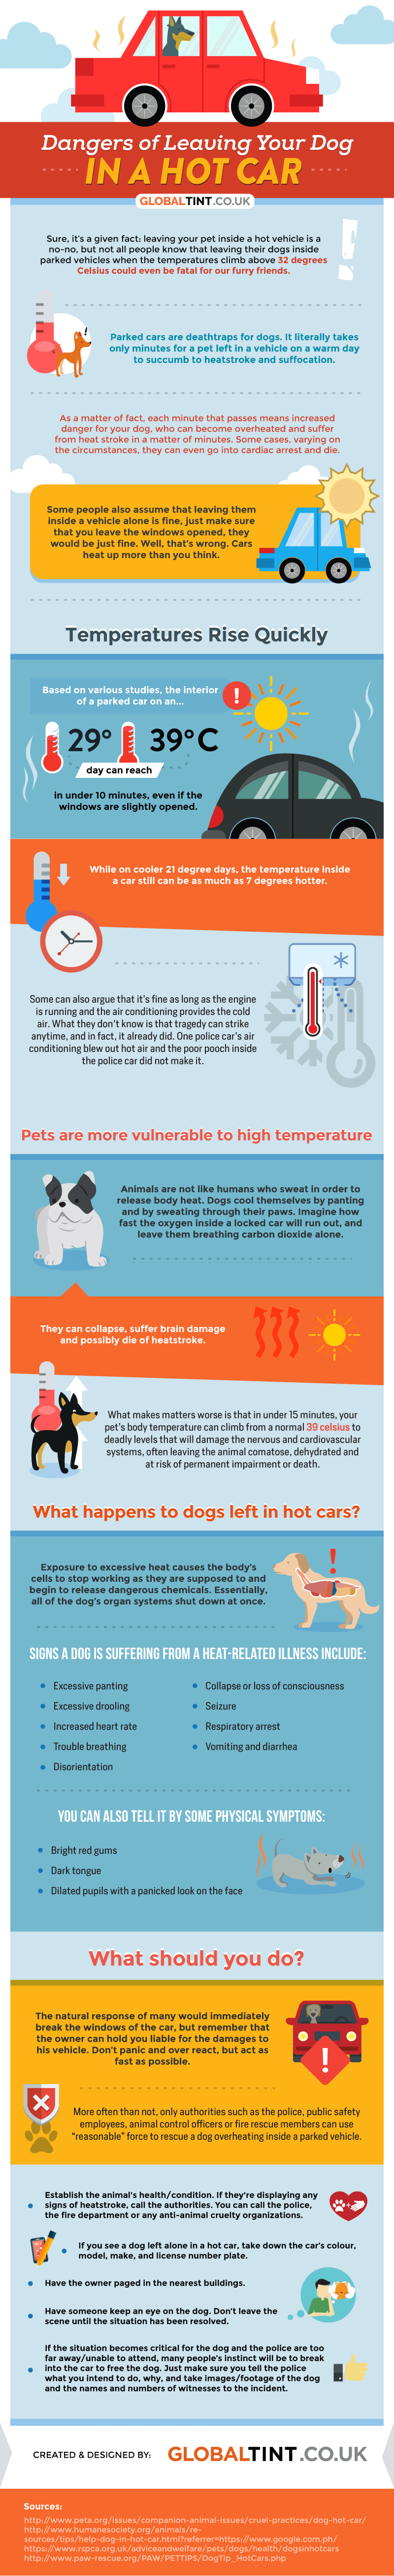 Infographic: Dangers of Leaving Your Dog In A Hot Car | Vanillapup